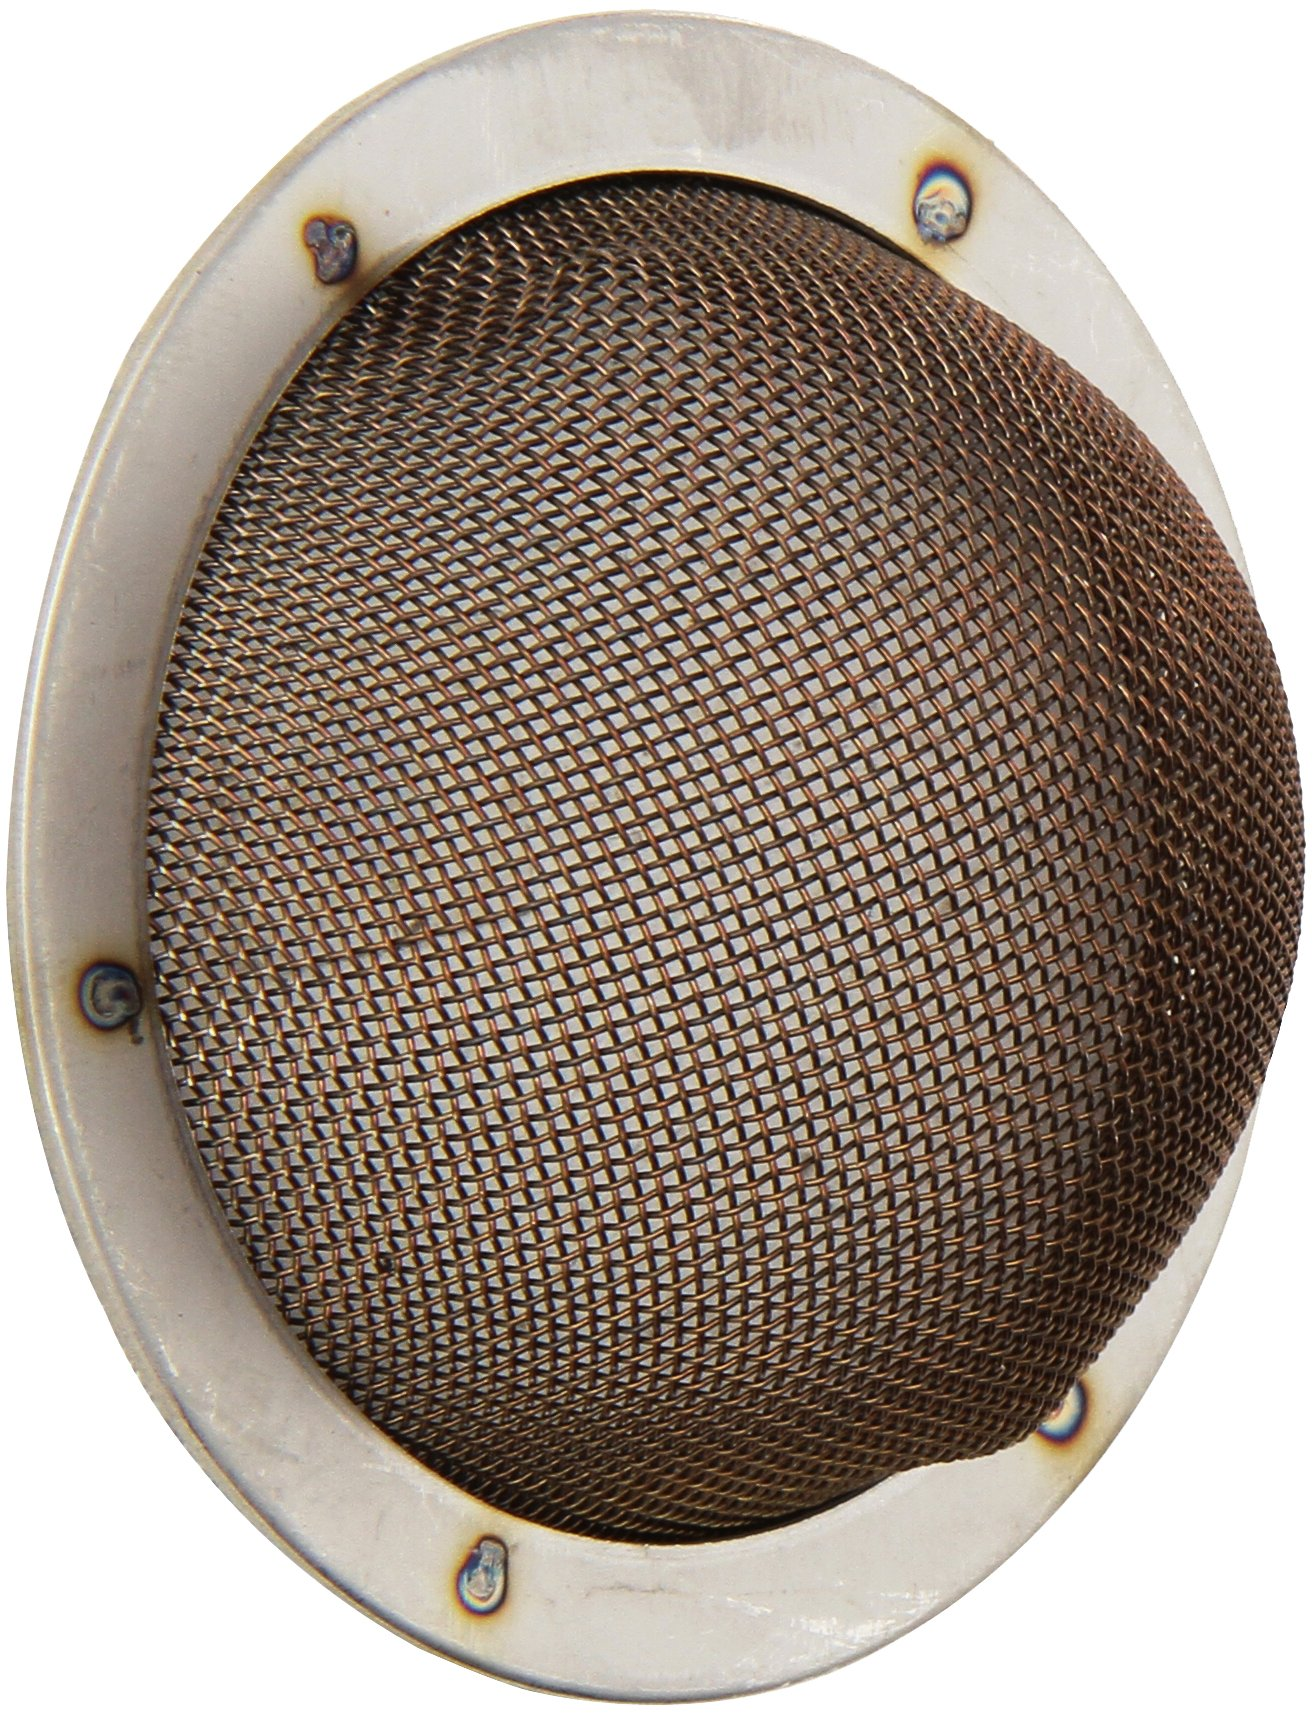 HMF 6956006 Spark Arrester for Exhaust by HMF Engineering